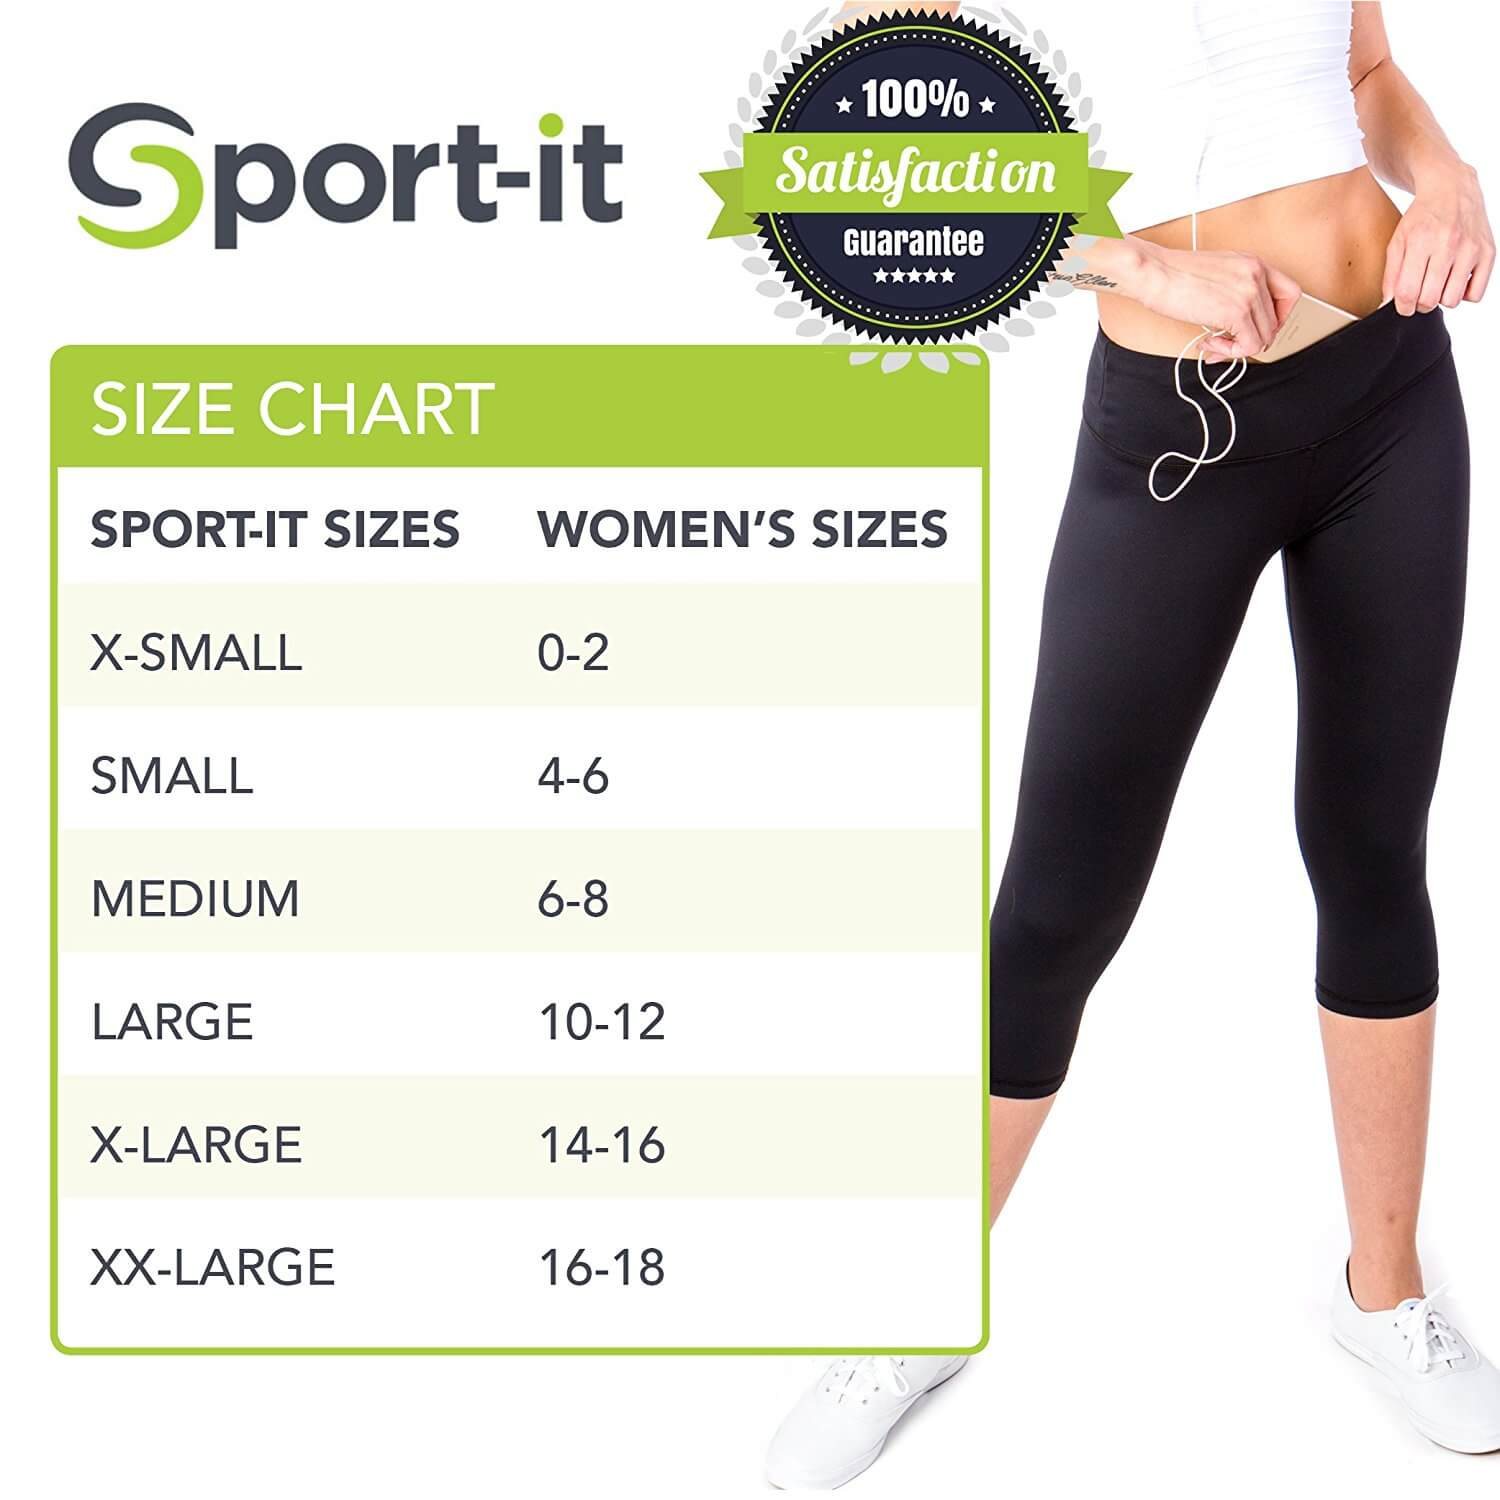 Go Sport-it: CAPRI LEGGINGS with Pocket and Tummy Control